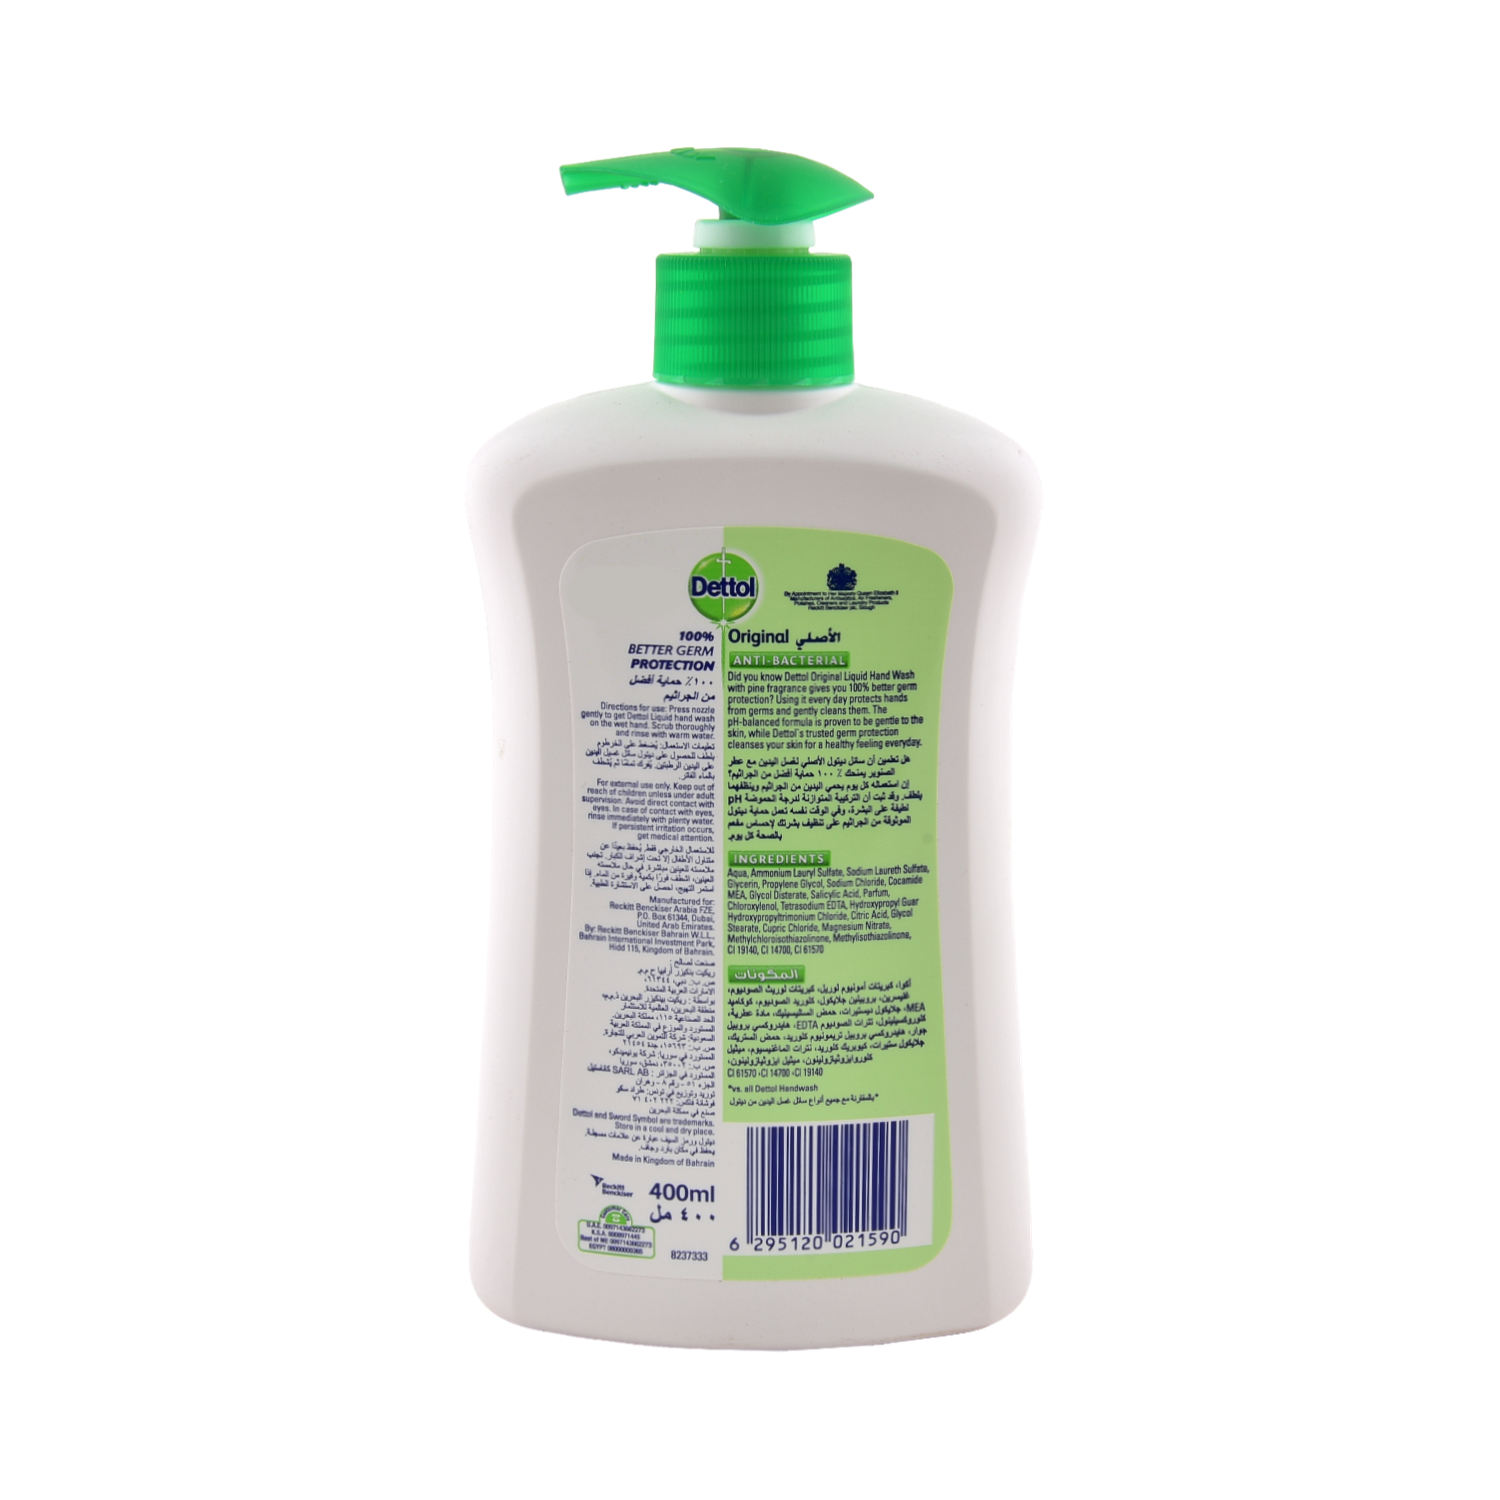 Dettol Original Anti Bacterial Liquid Hand Soap 400ml Upc Series Package 6295120021590